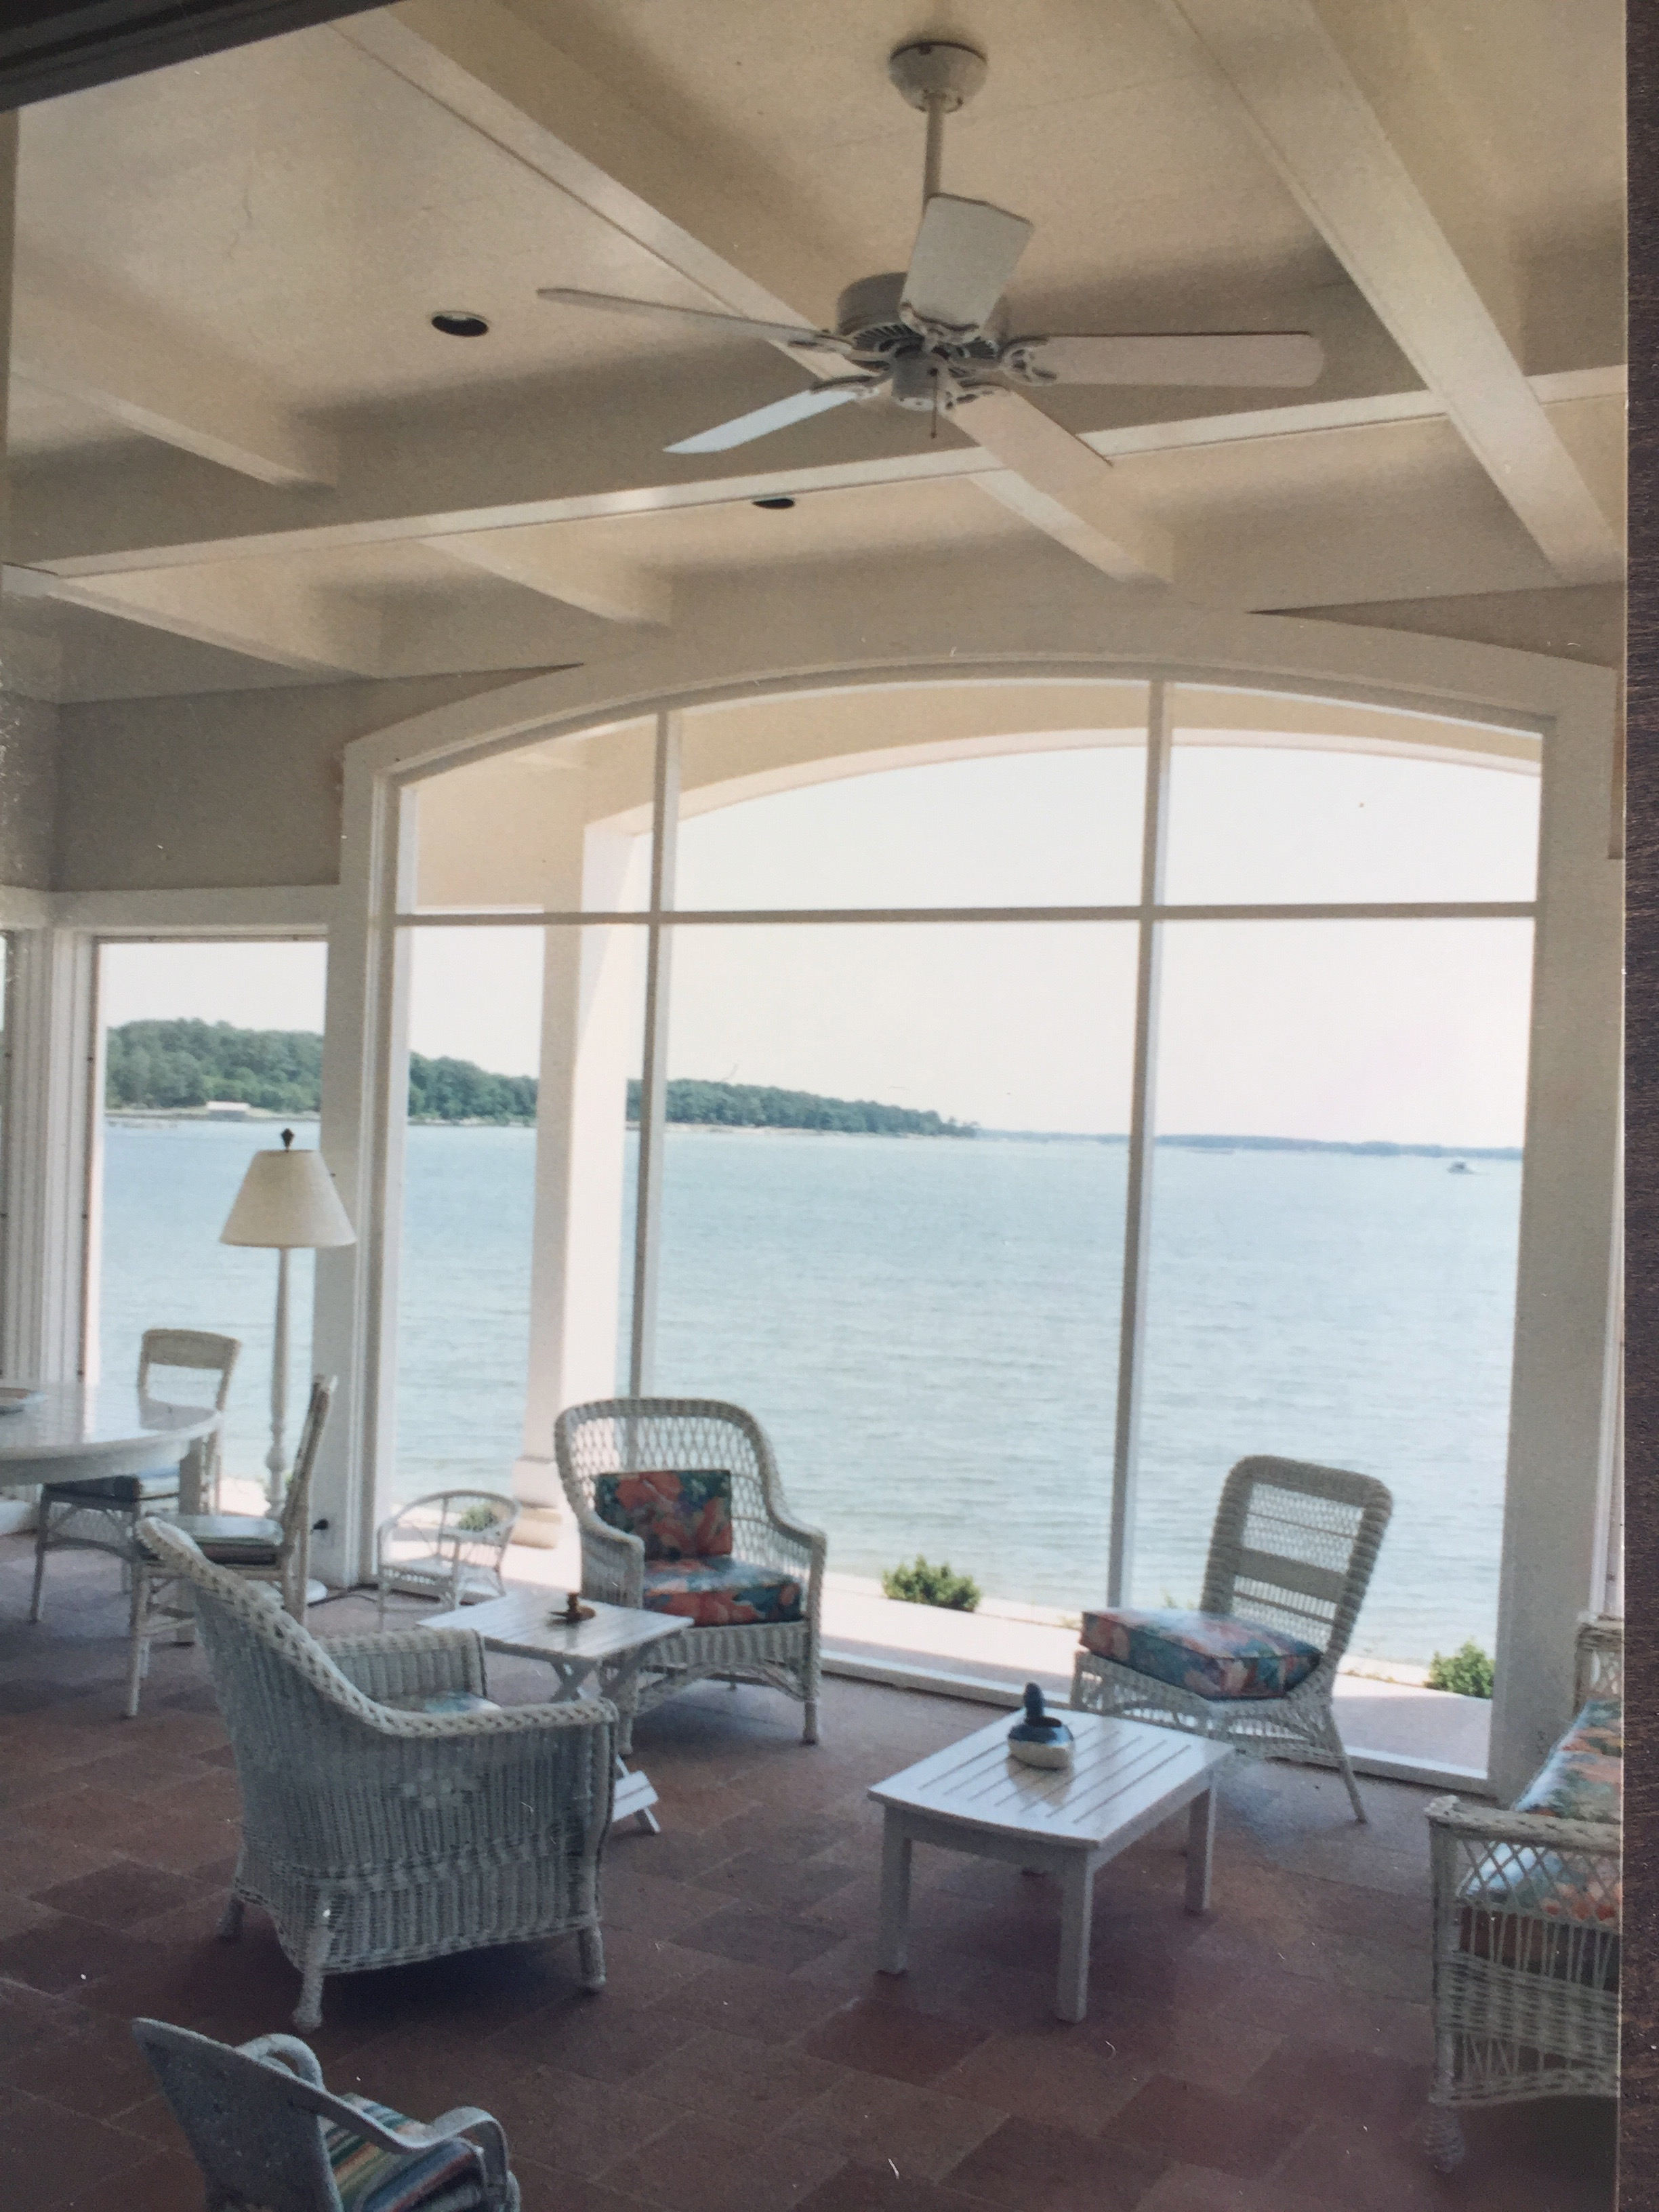 Screened porch overlooking Fishing Bay